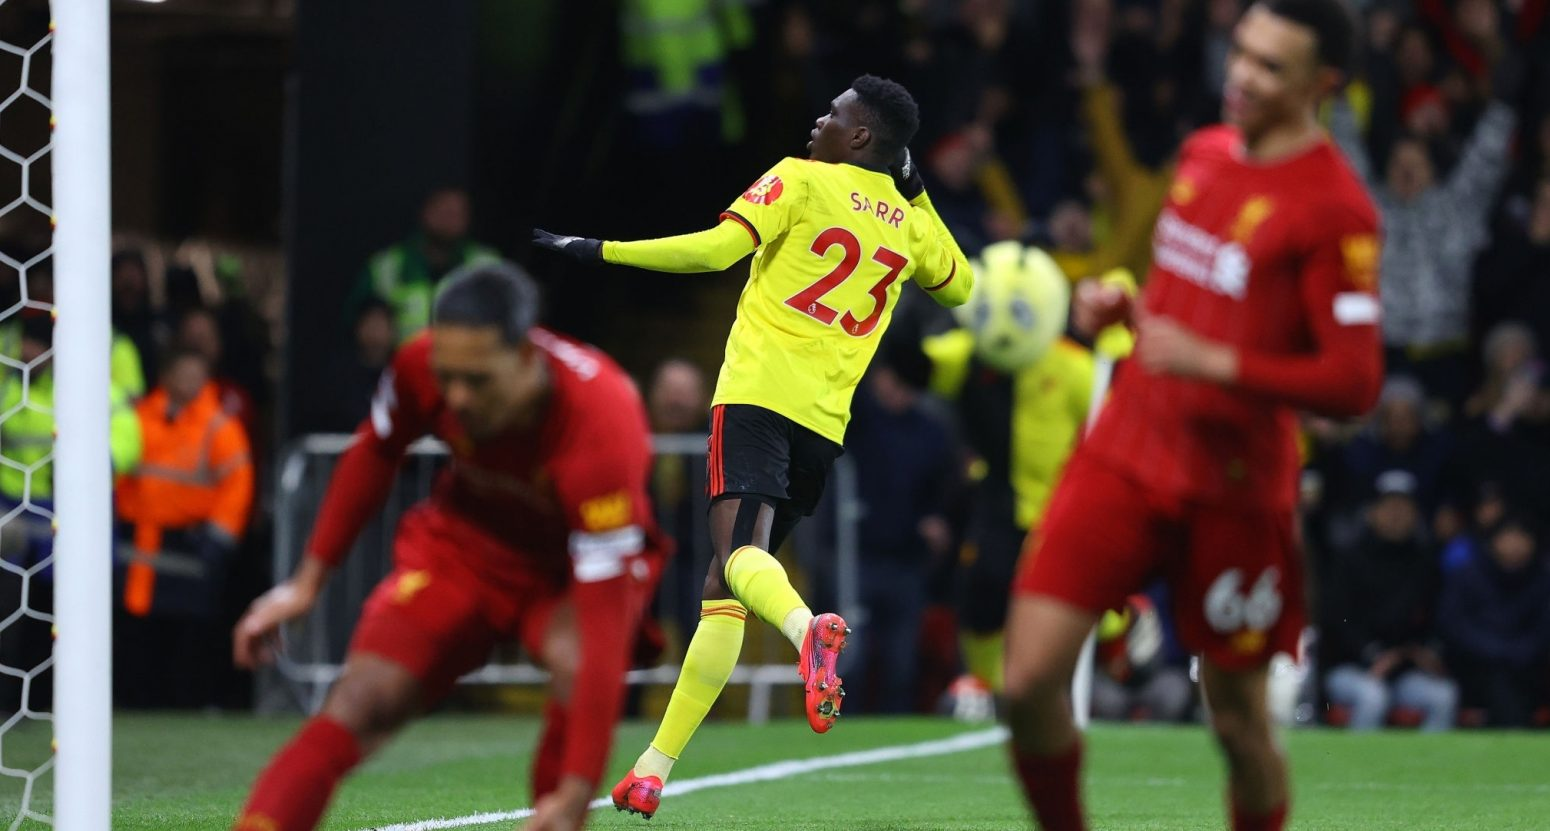 Watford 3-0 Liverpool – Highlights and Goals (Video)